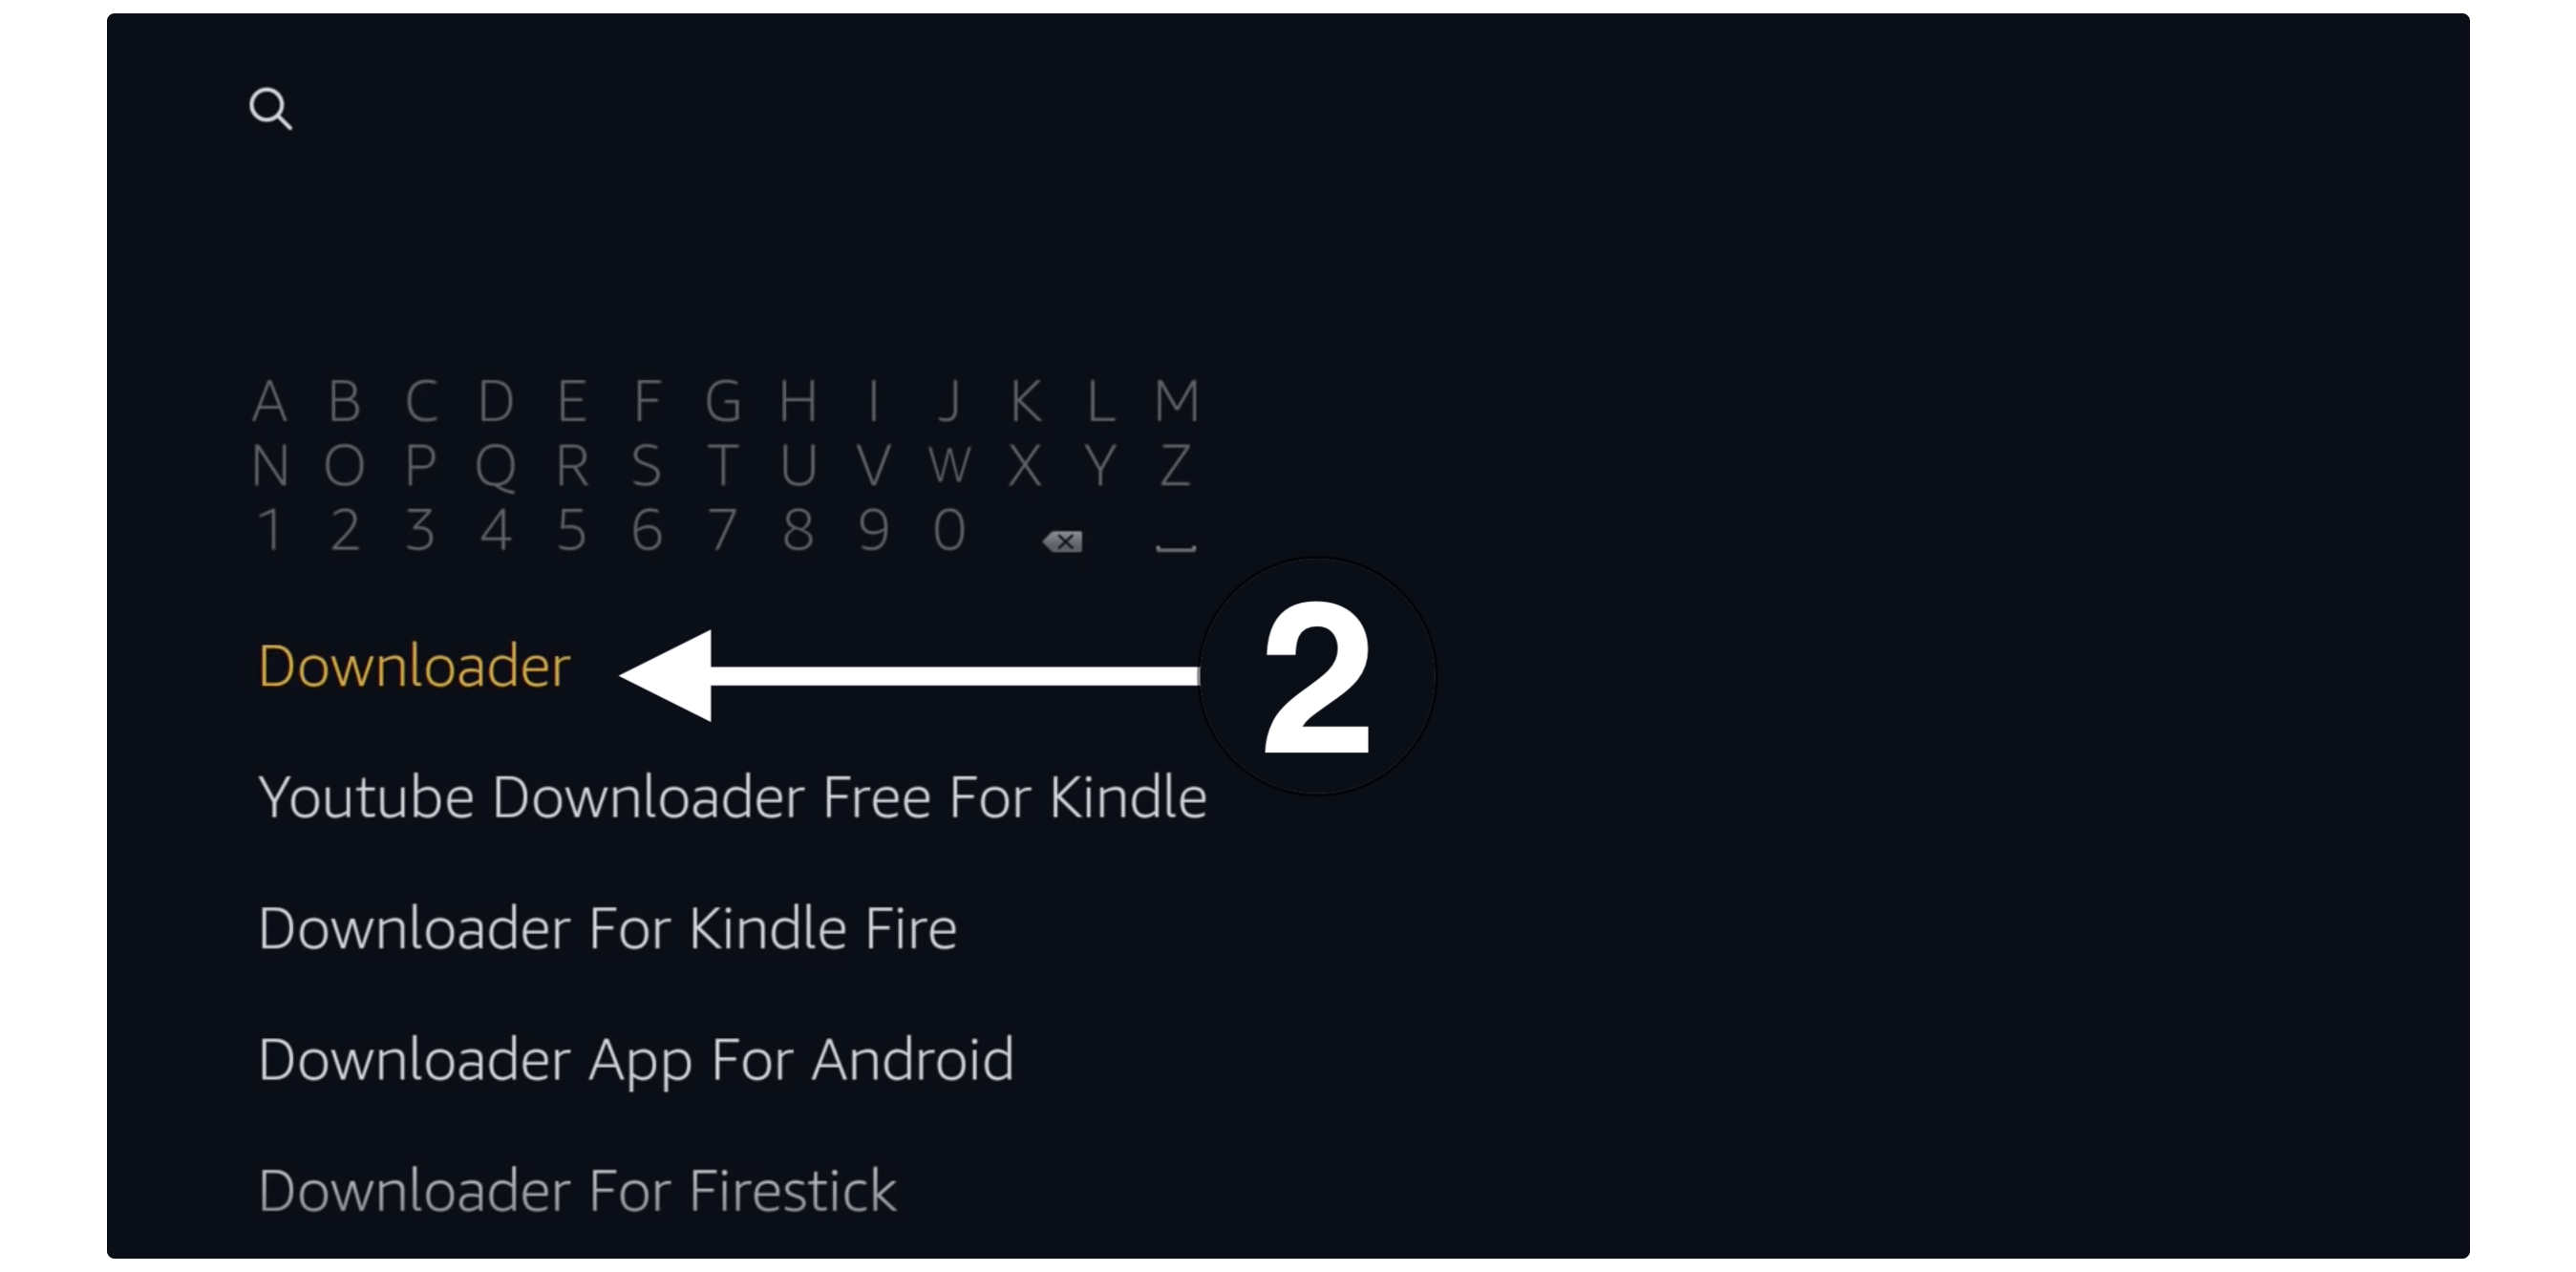 How-To-Install-Downloader-App-On-Amazon-Firestick